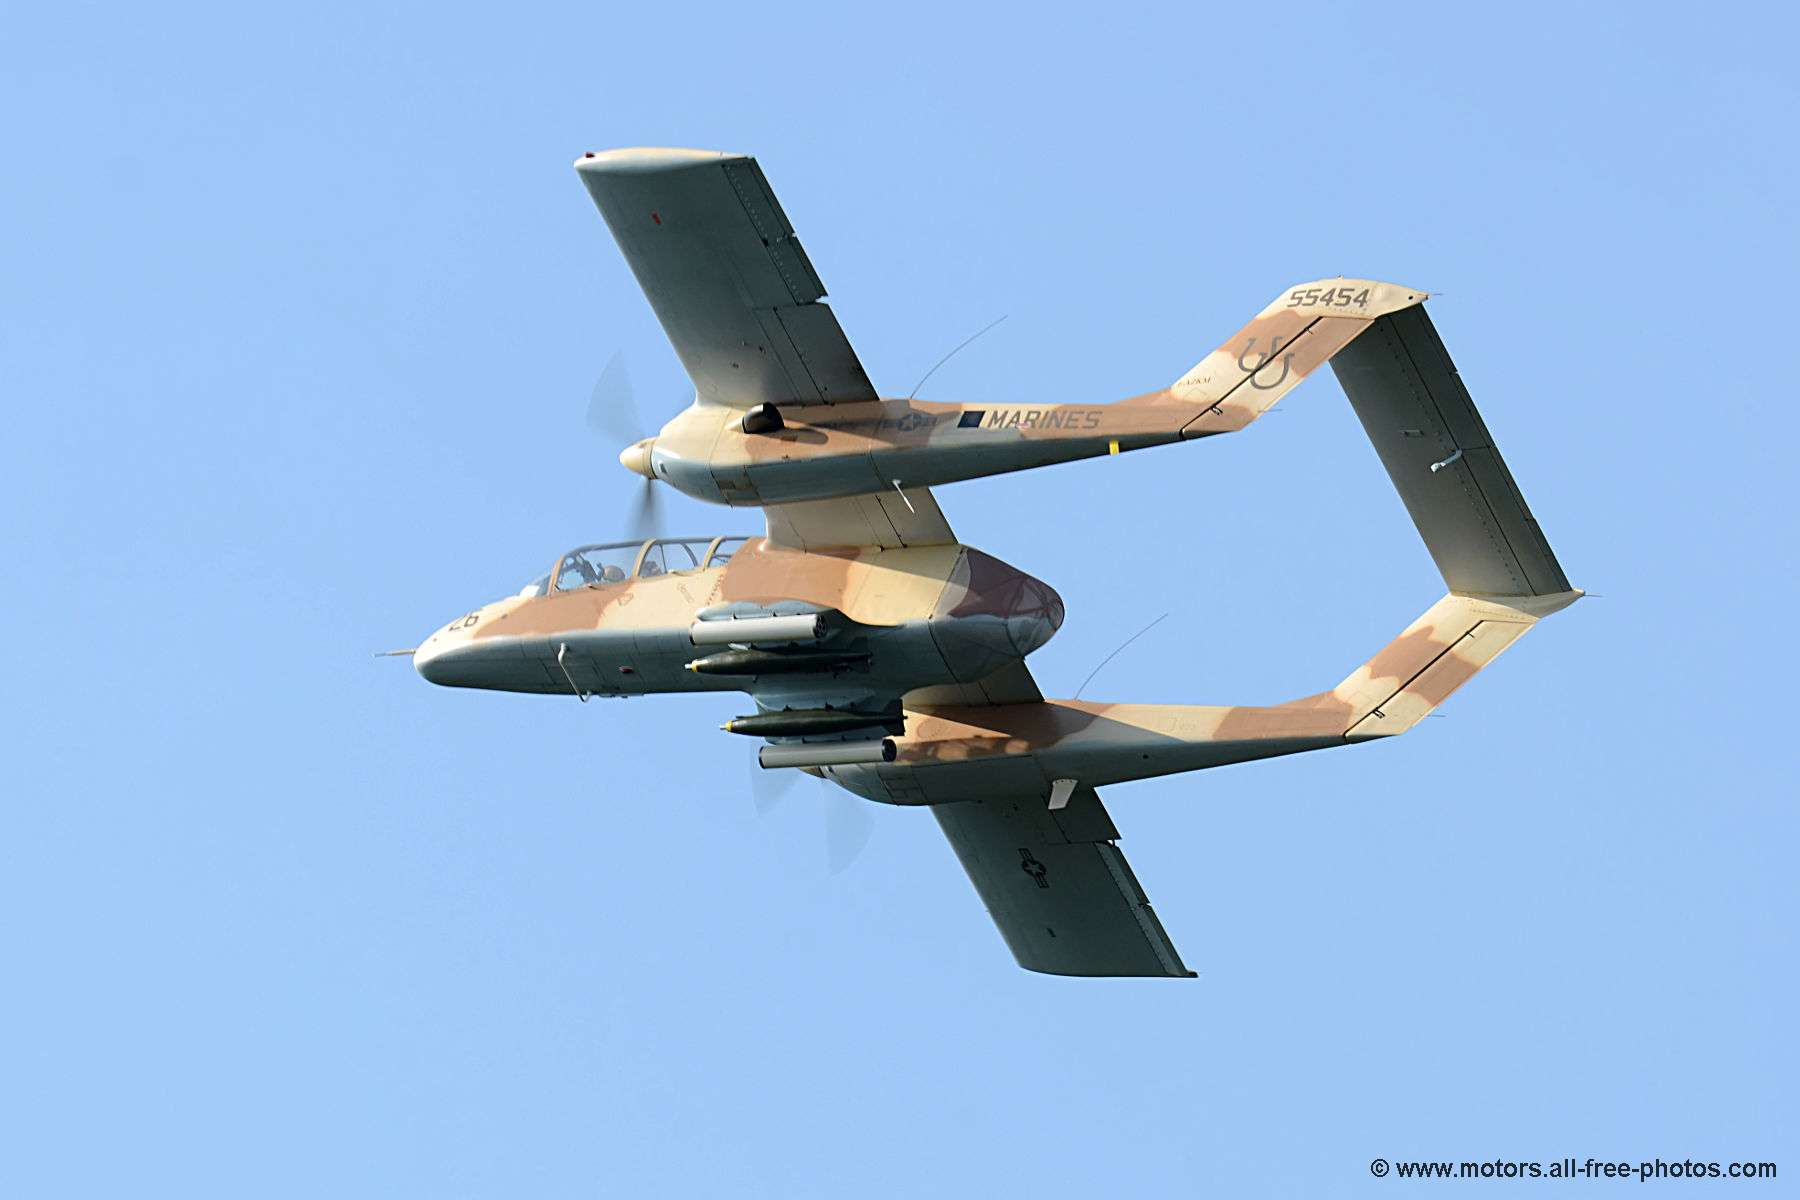 North American OV-10 Bronco